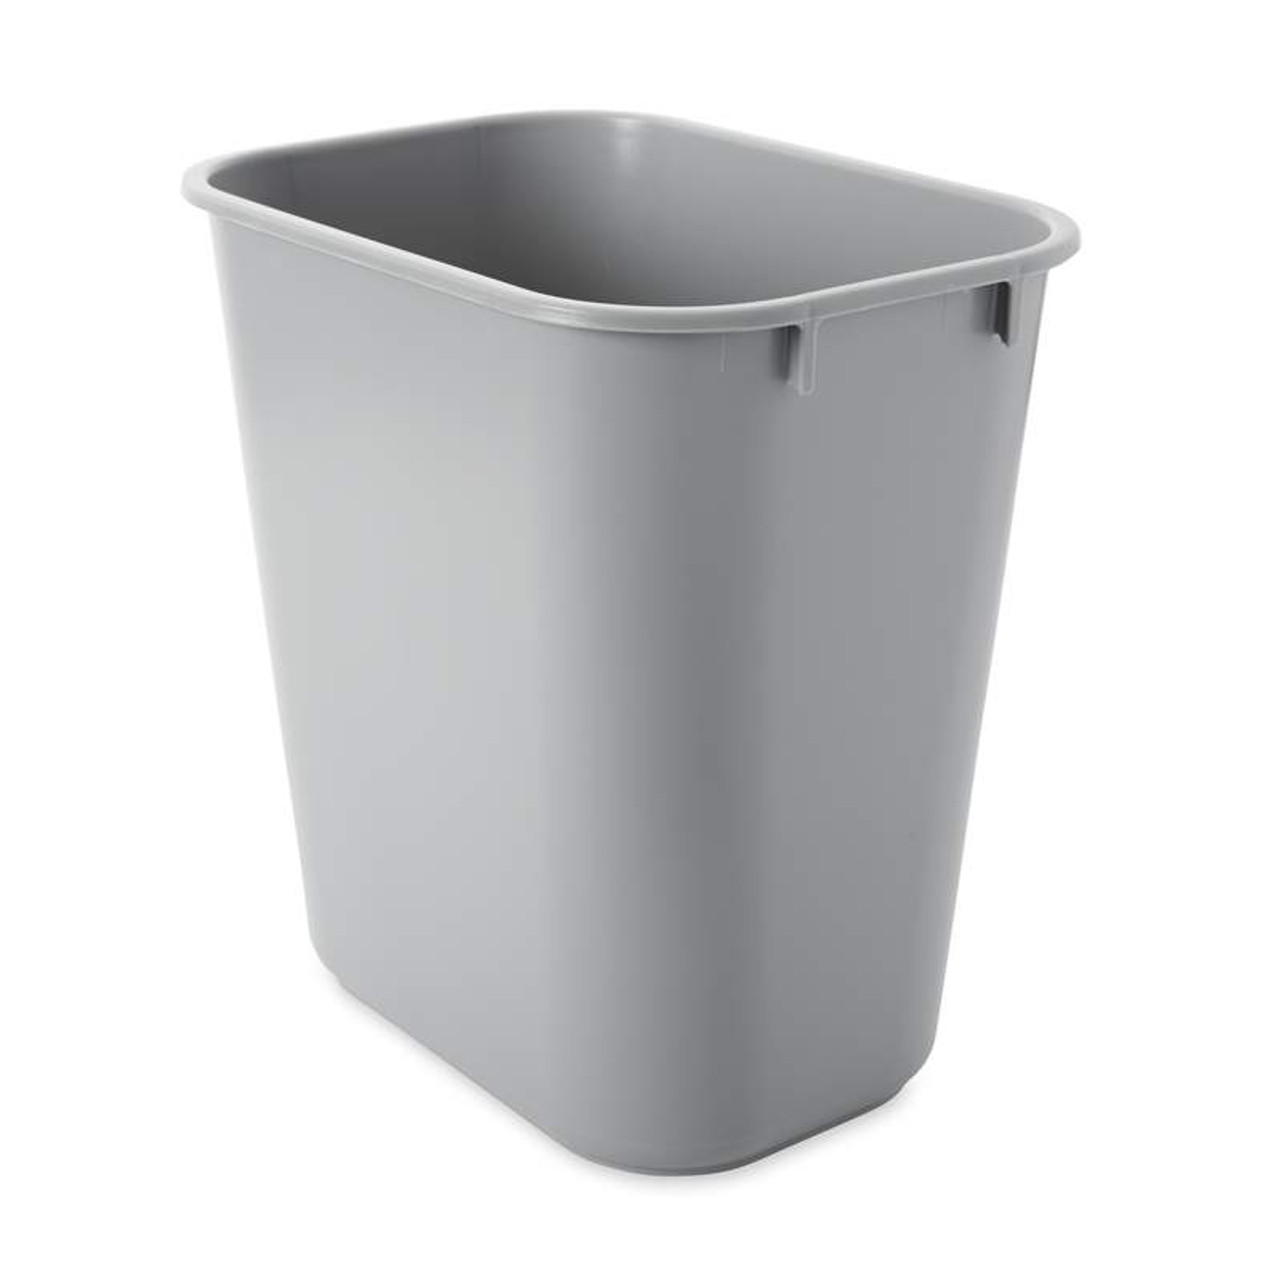 Rubbermaid Rectangular Wastebasket 12.9 L  - FG295500GRAY